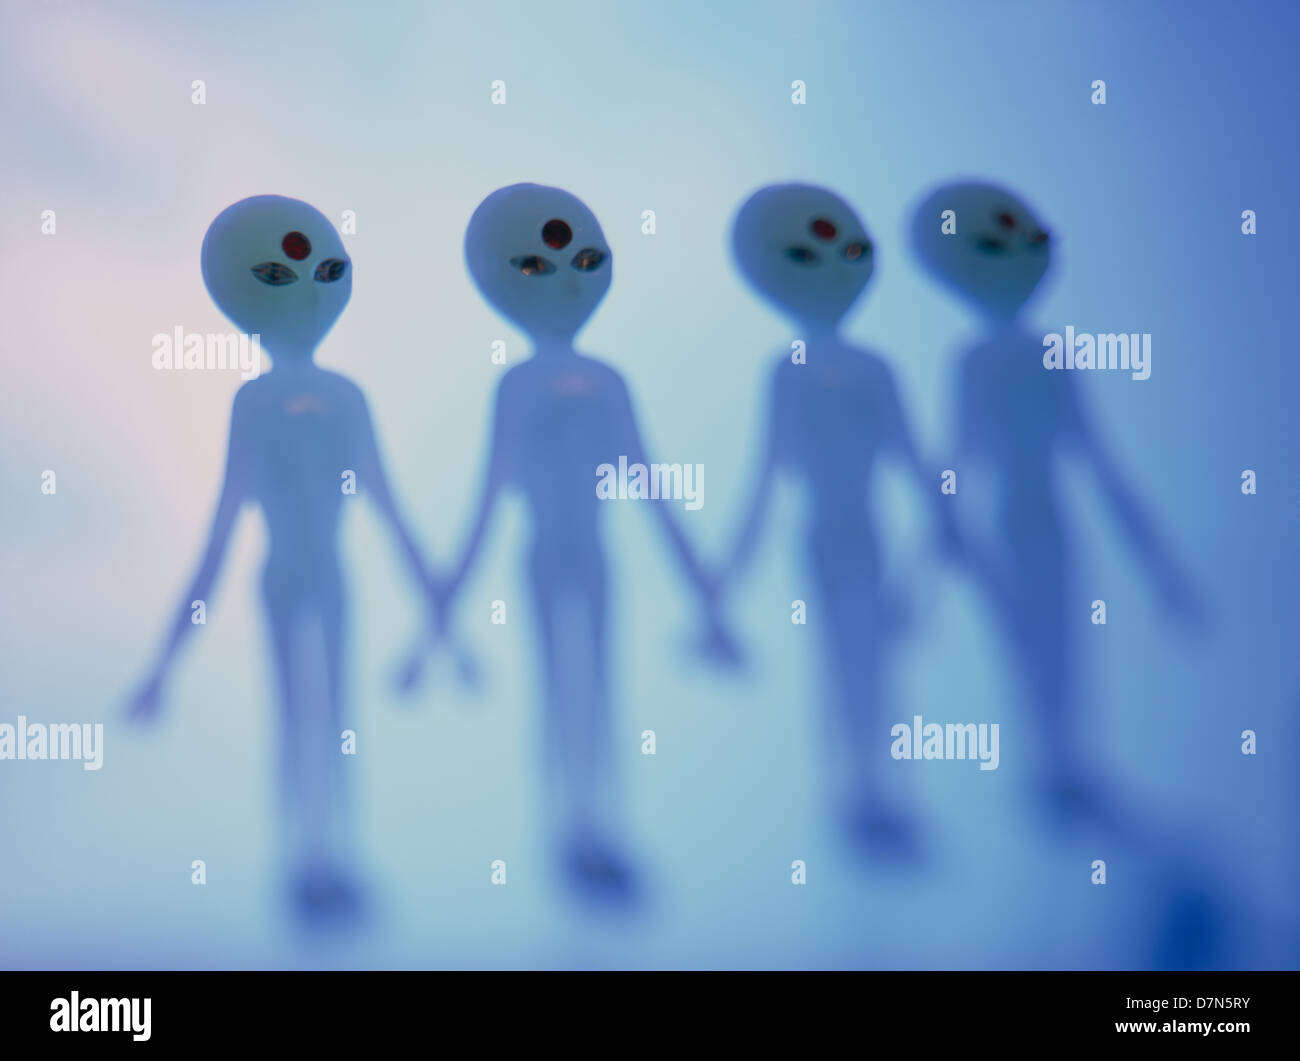 Four blue aliens in a row, ©mak. - Stock Image